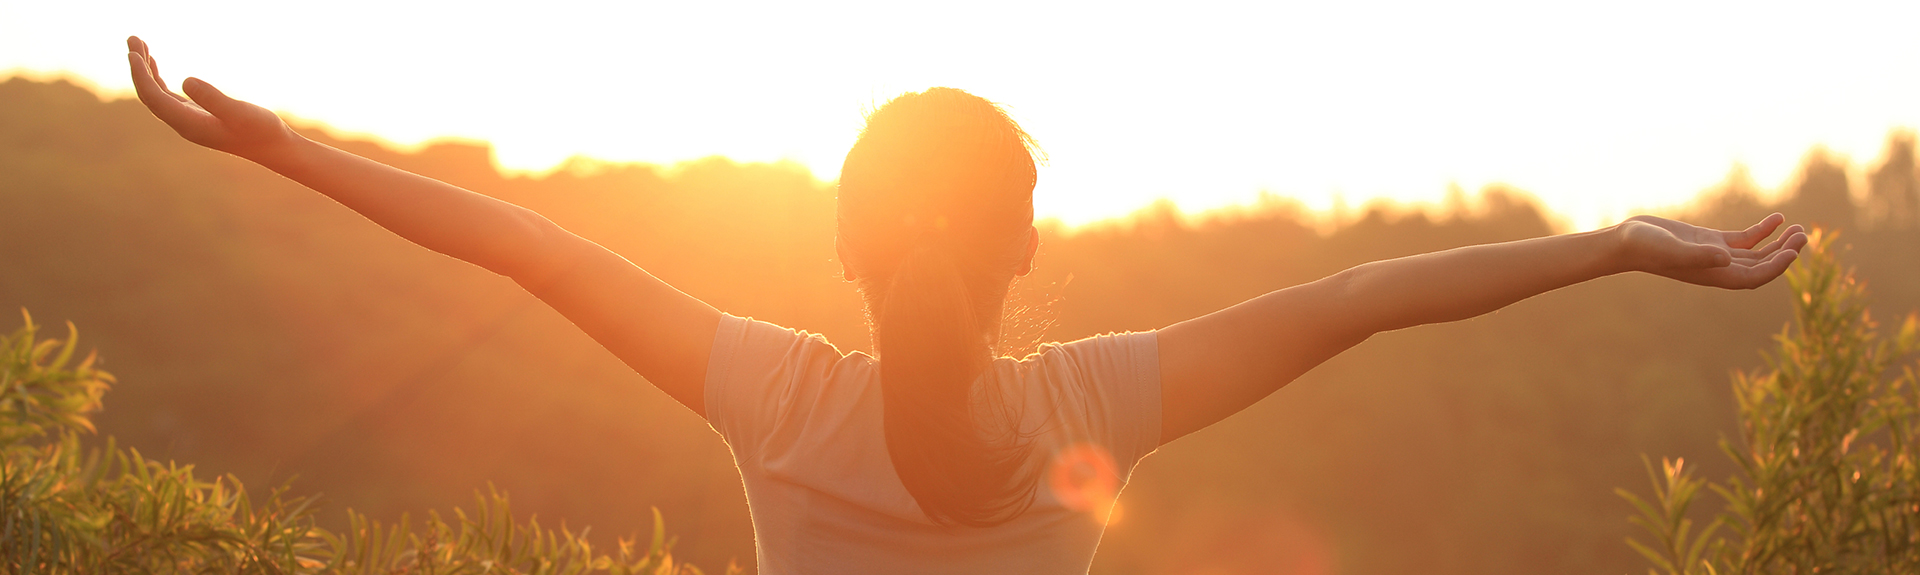 sun flare woman silhouette arms spread in nature